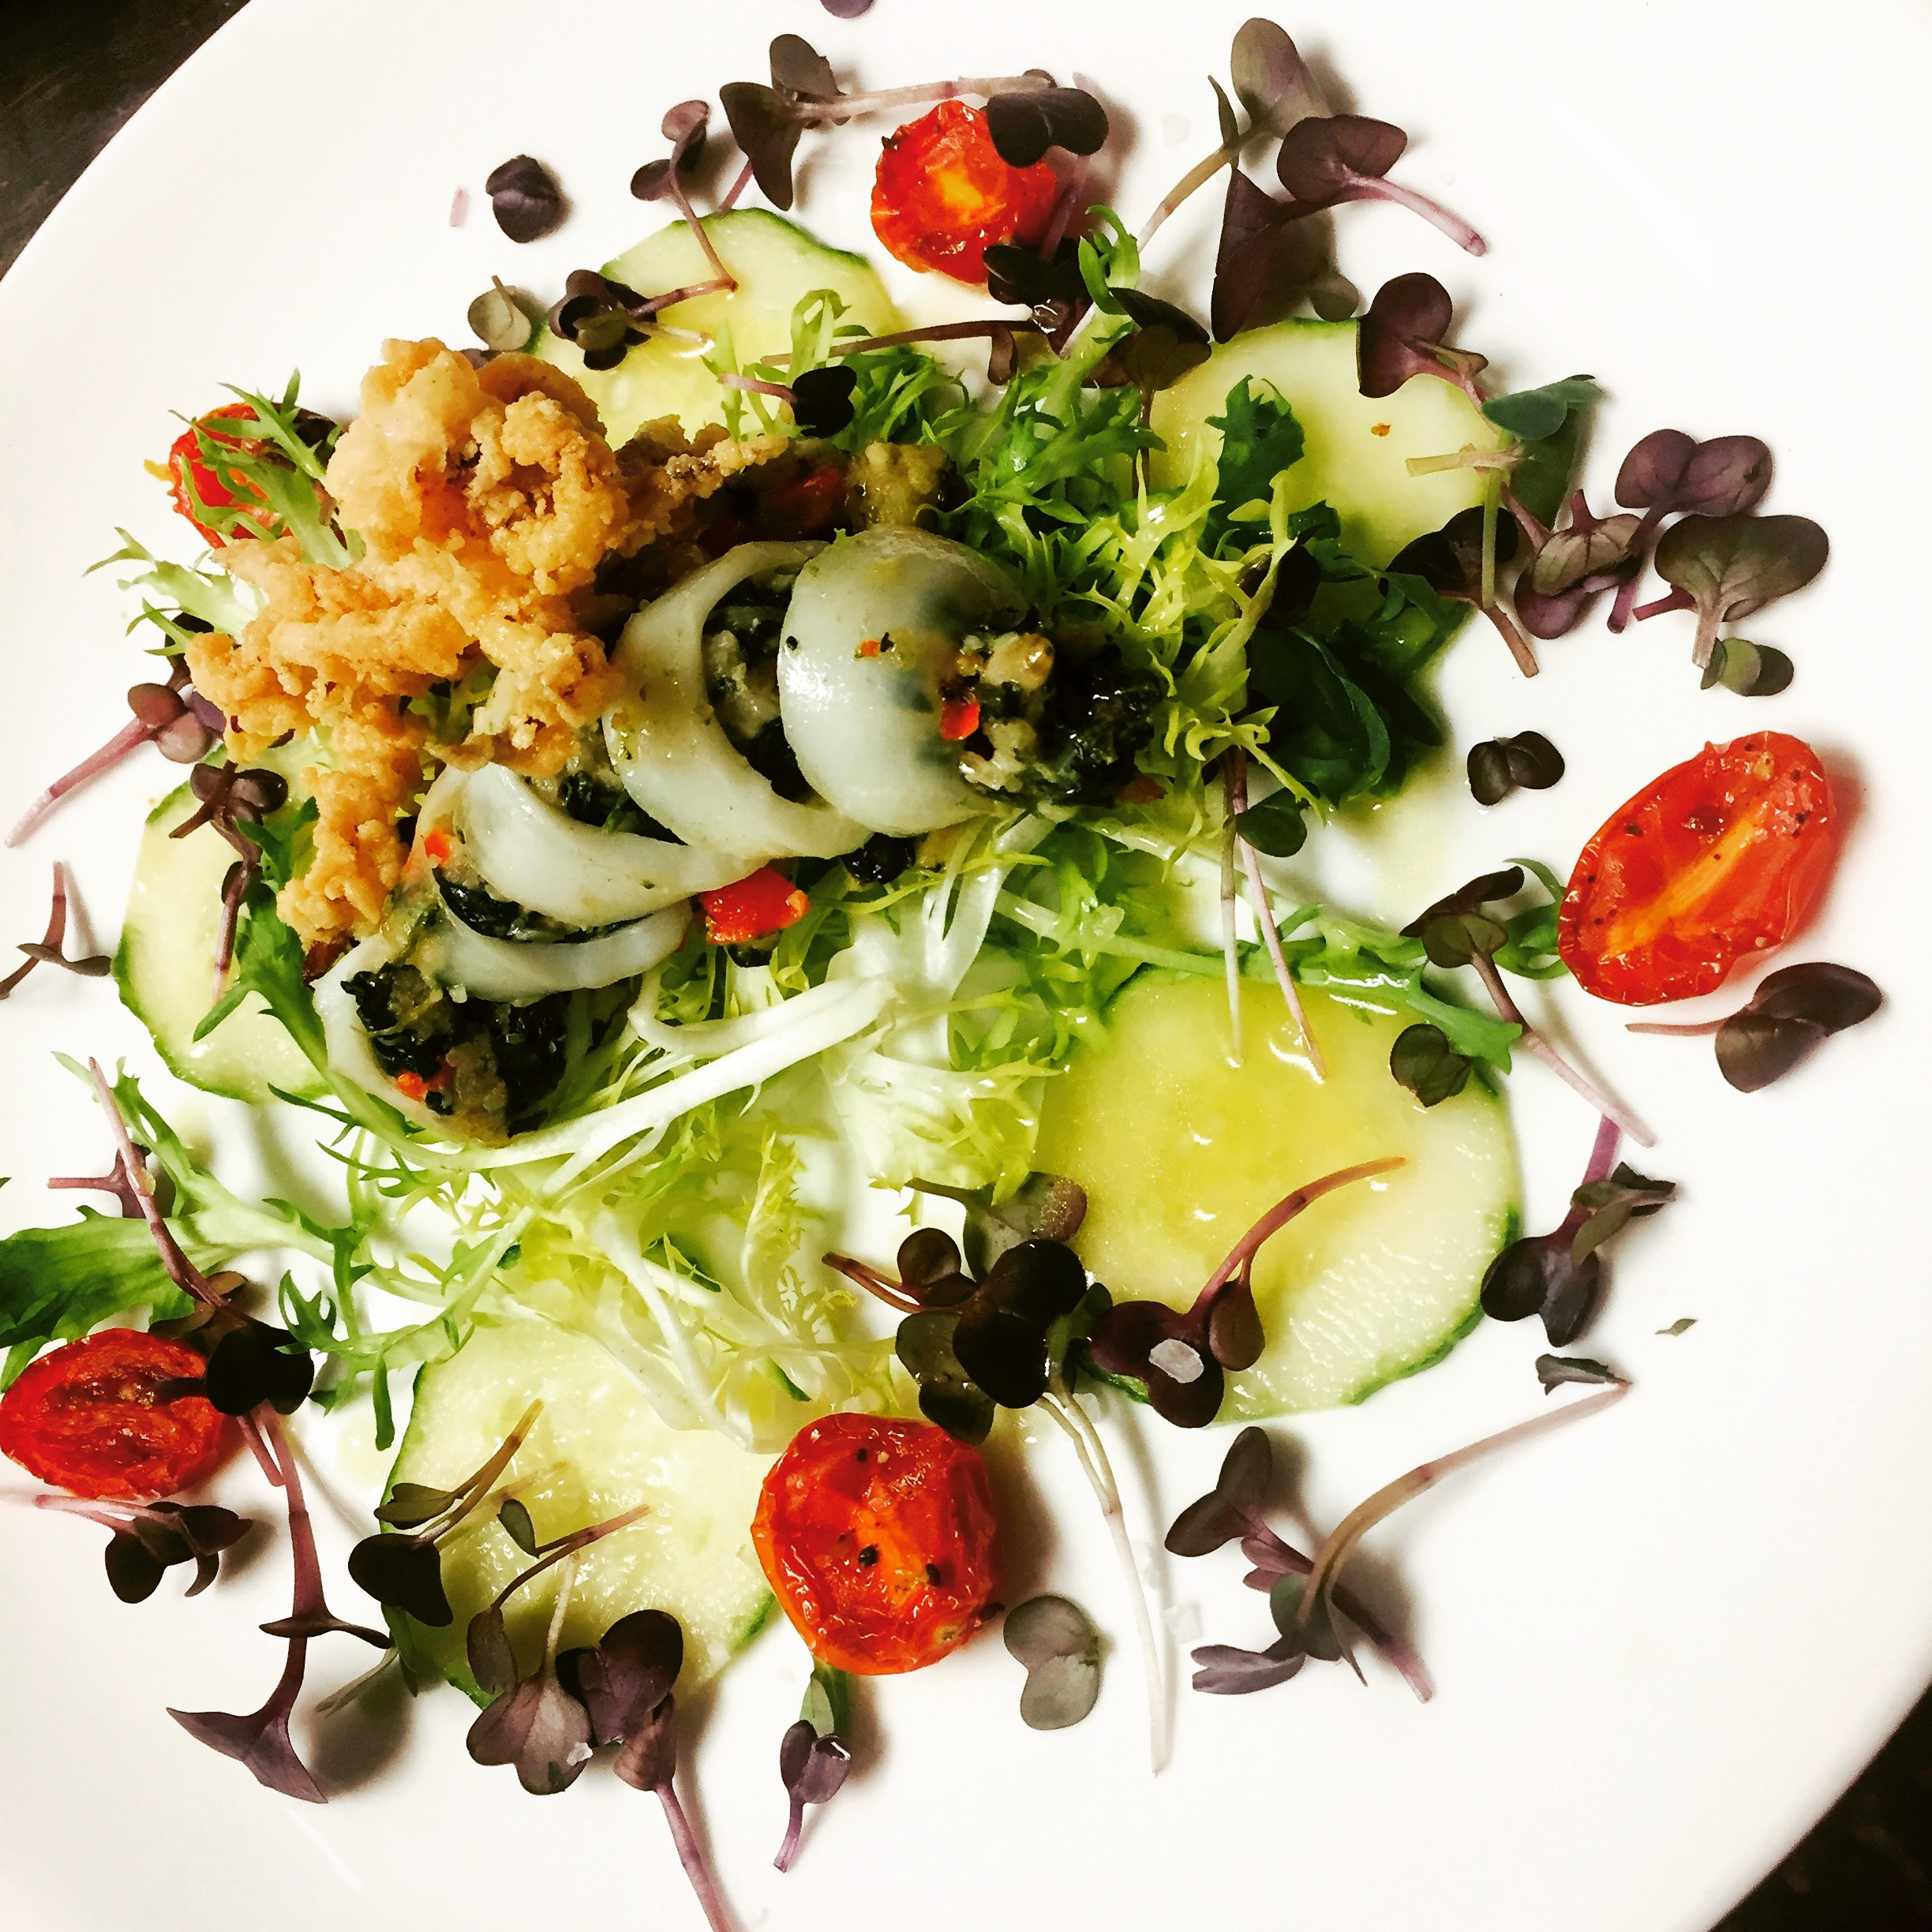 Stuffed and fried calamari on a bed of salad with tomatoes and cucumbers.